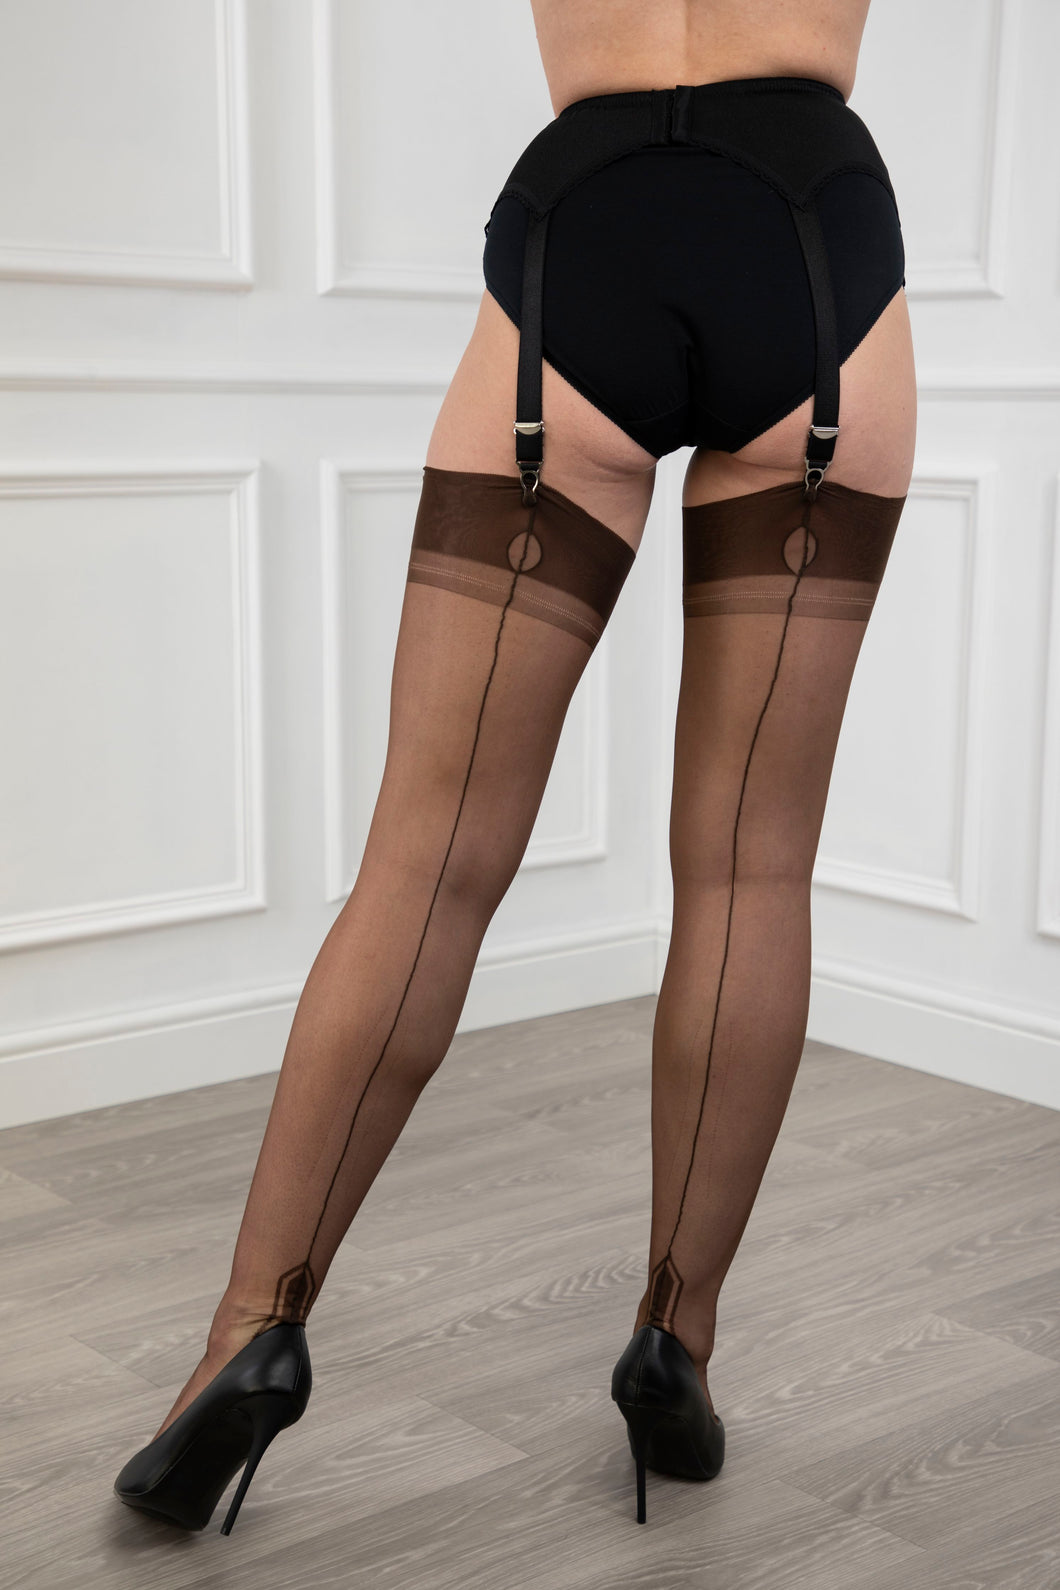 Manhattan Heel Stockings